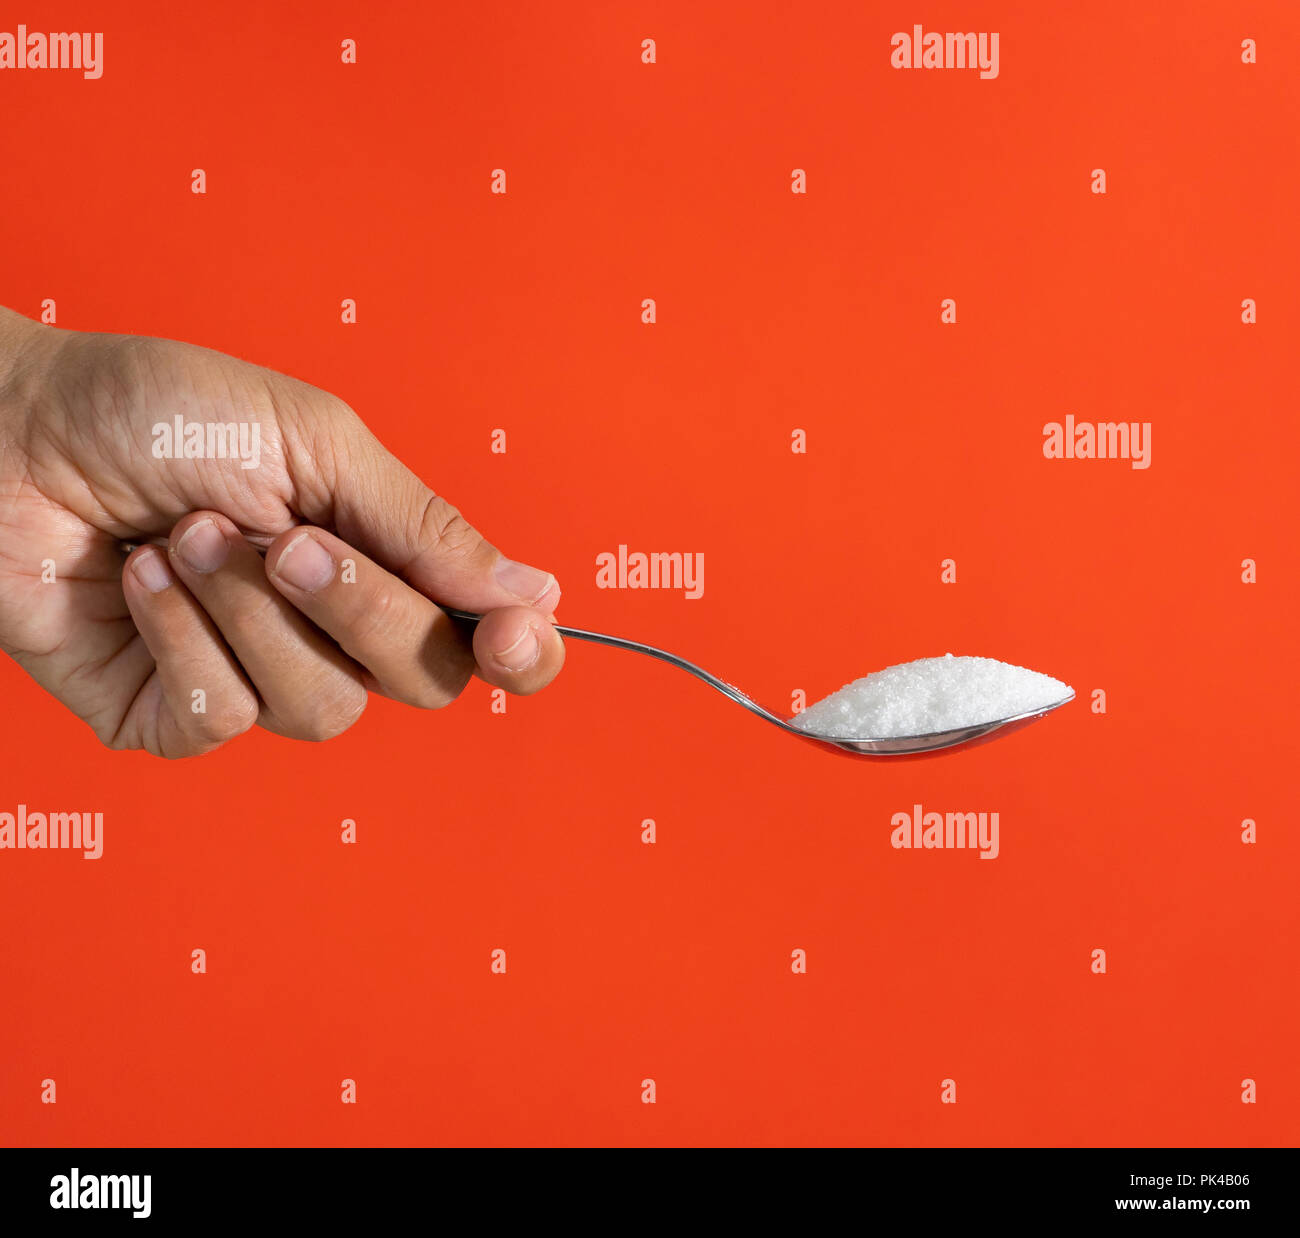 Woman hand holding and offering a spoon full of sugar isolated on a red background in sugar addiction, diet, health problems, diabetes, calories and q - Stock Image